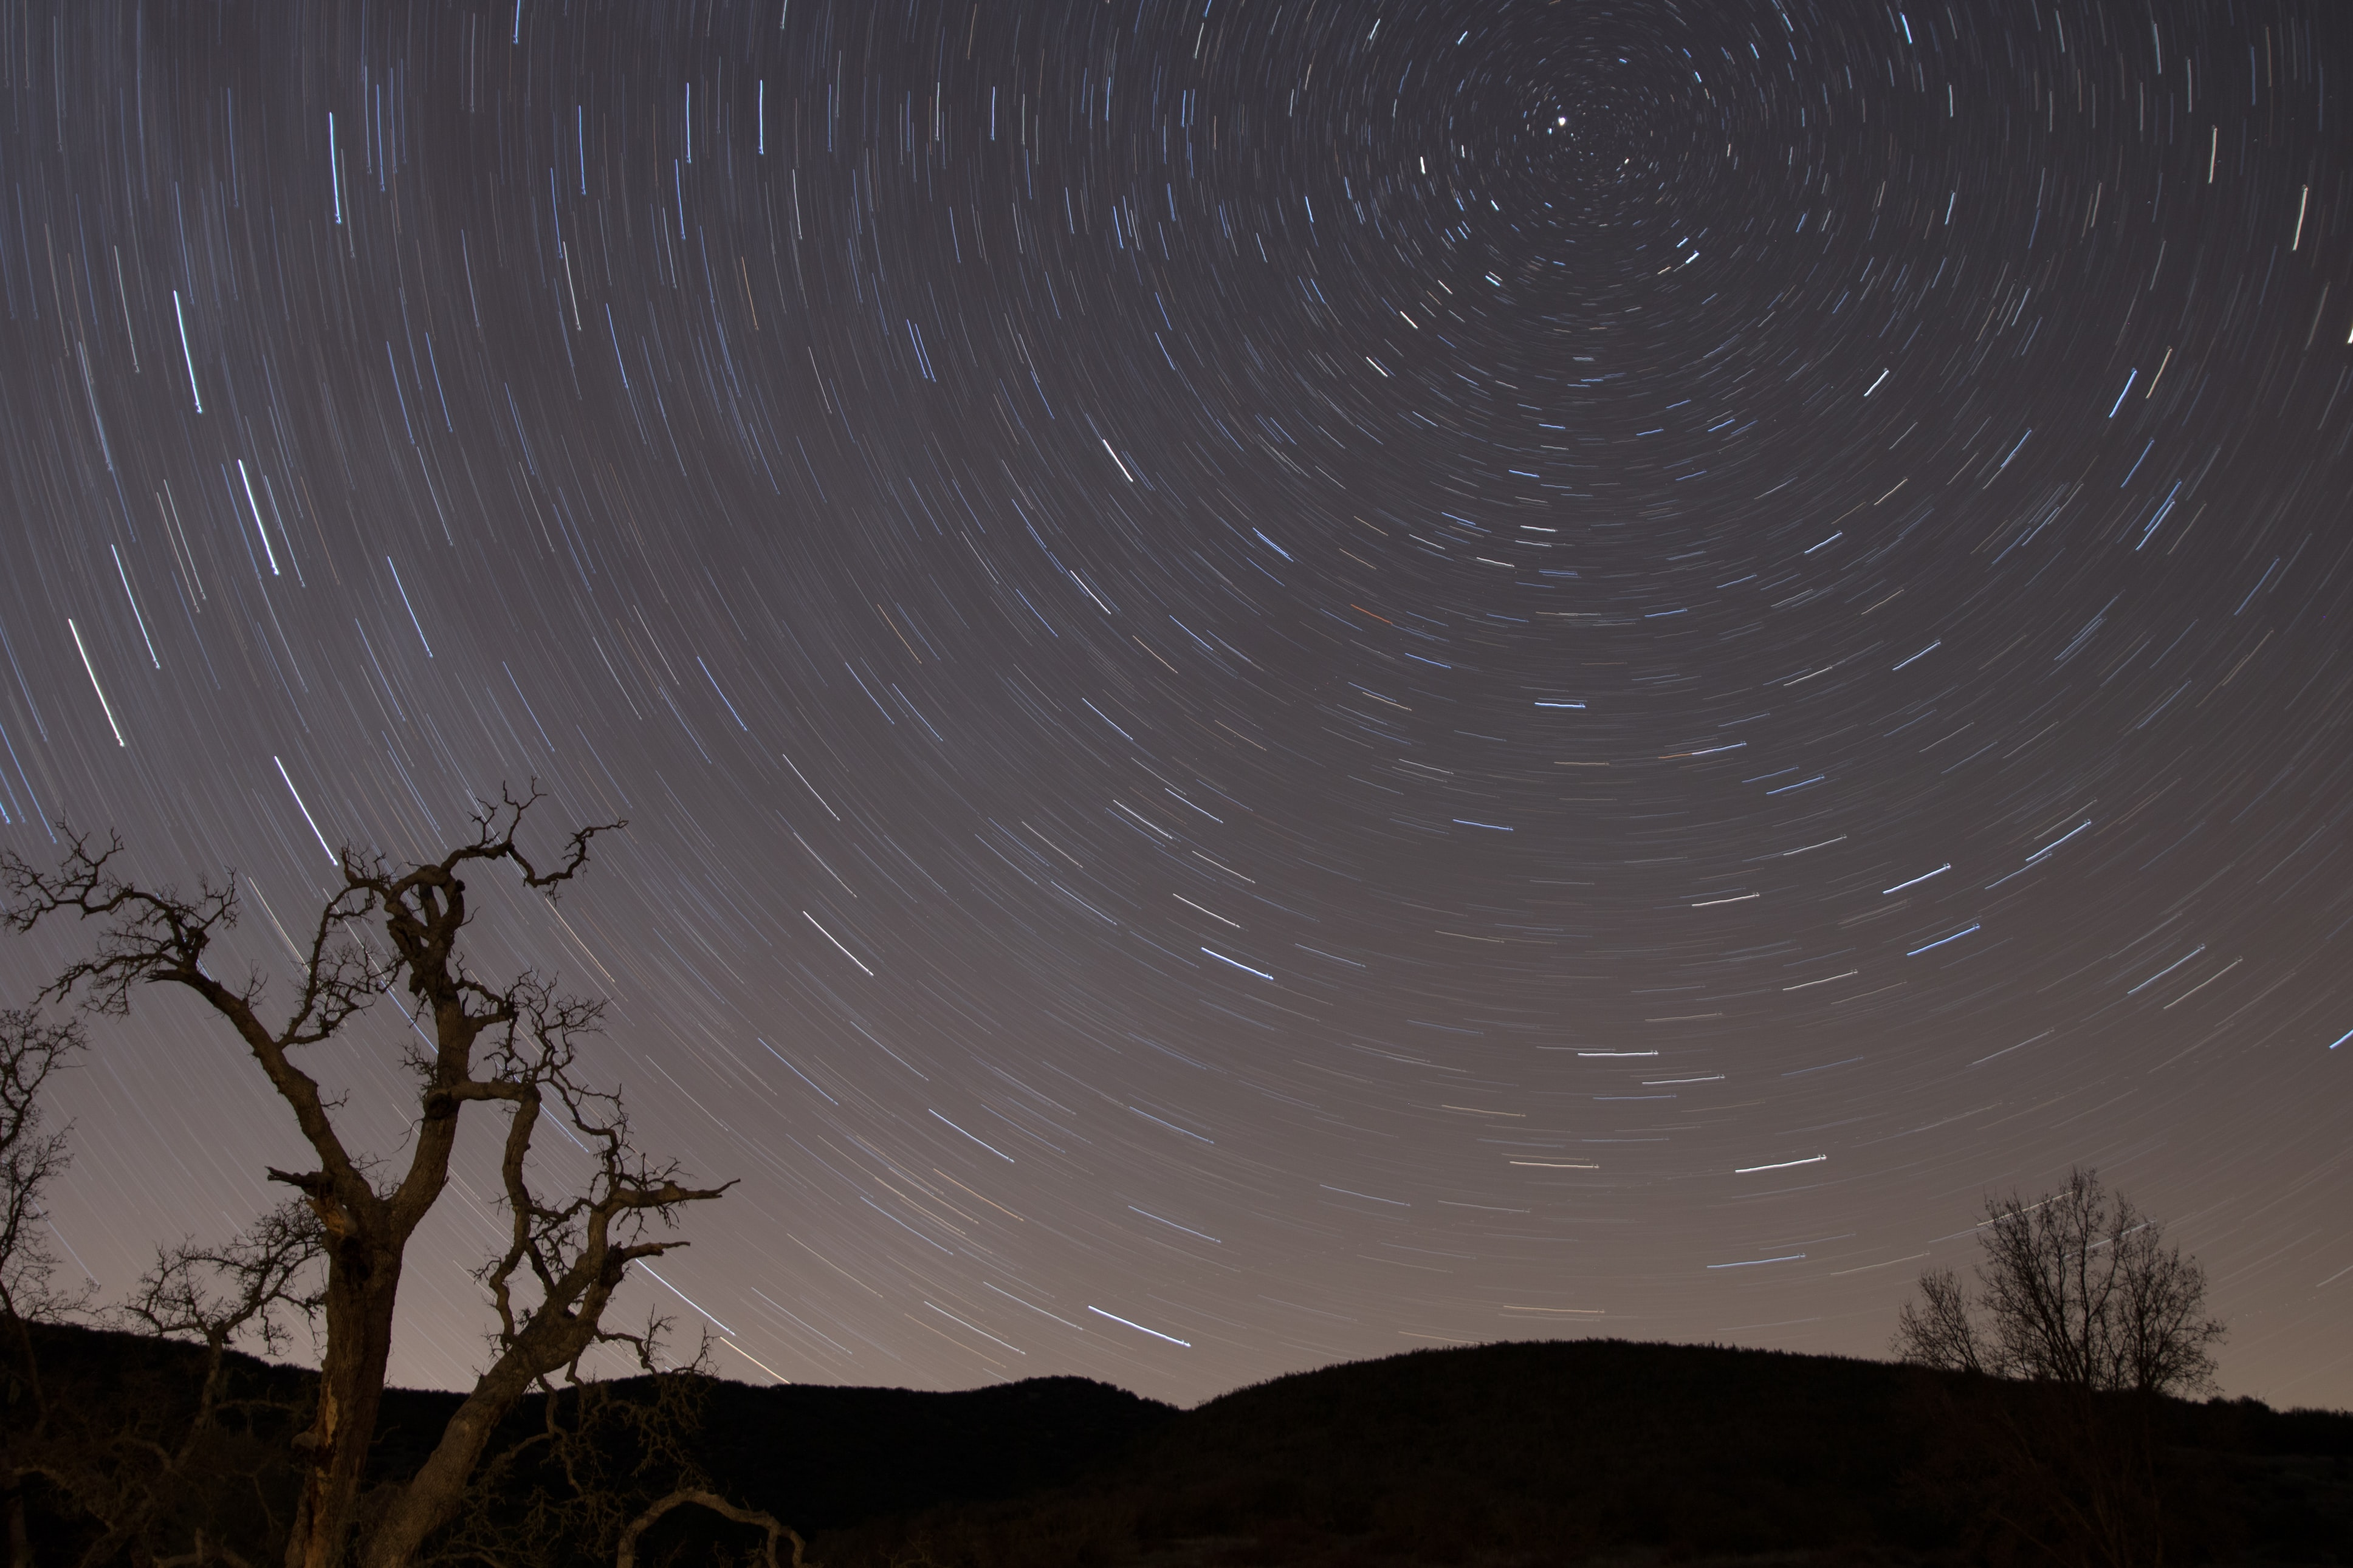 A long exposure shot of a star-filled night sky, featuring silhouette trees and hills